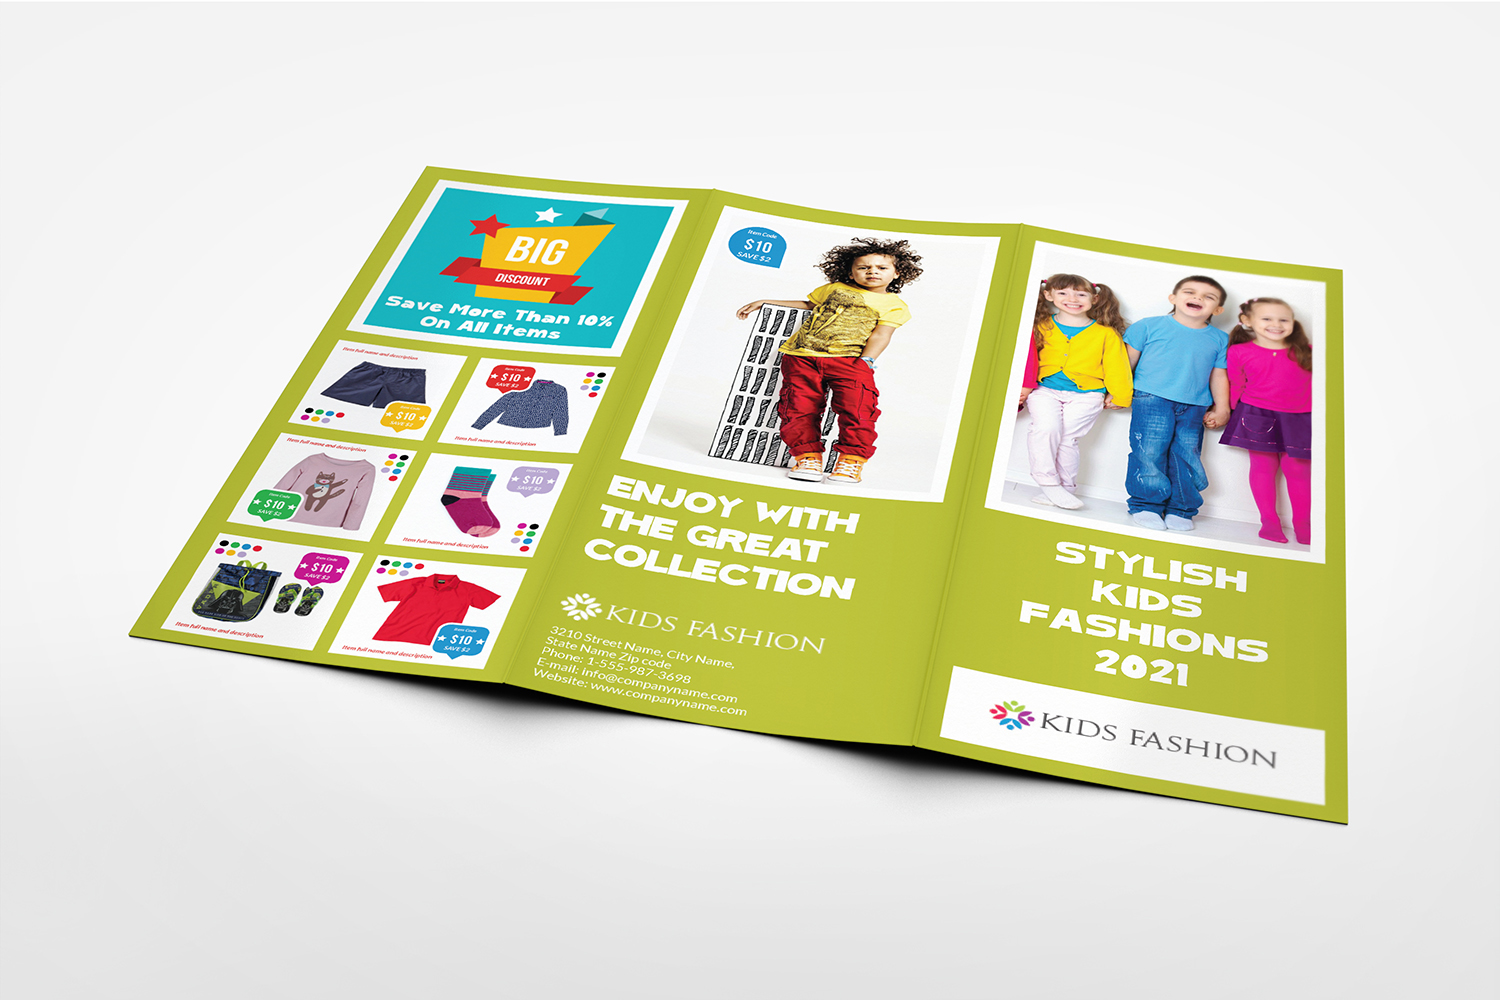 Kids Fashion Products Catalog Tri-Fold Brochure Tempalte example image 2